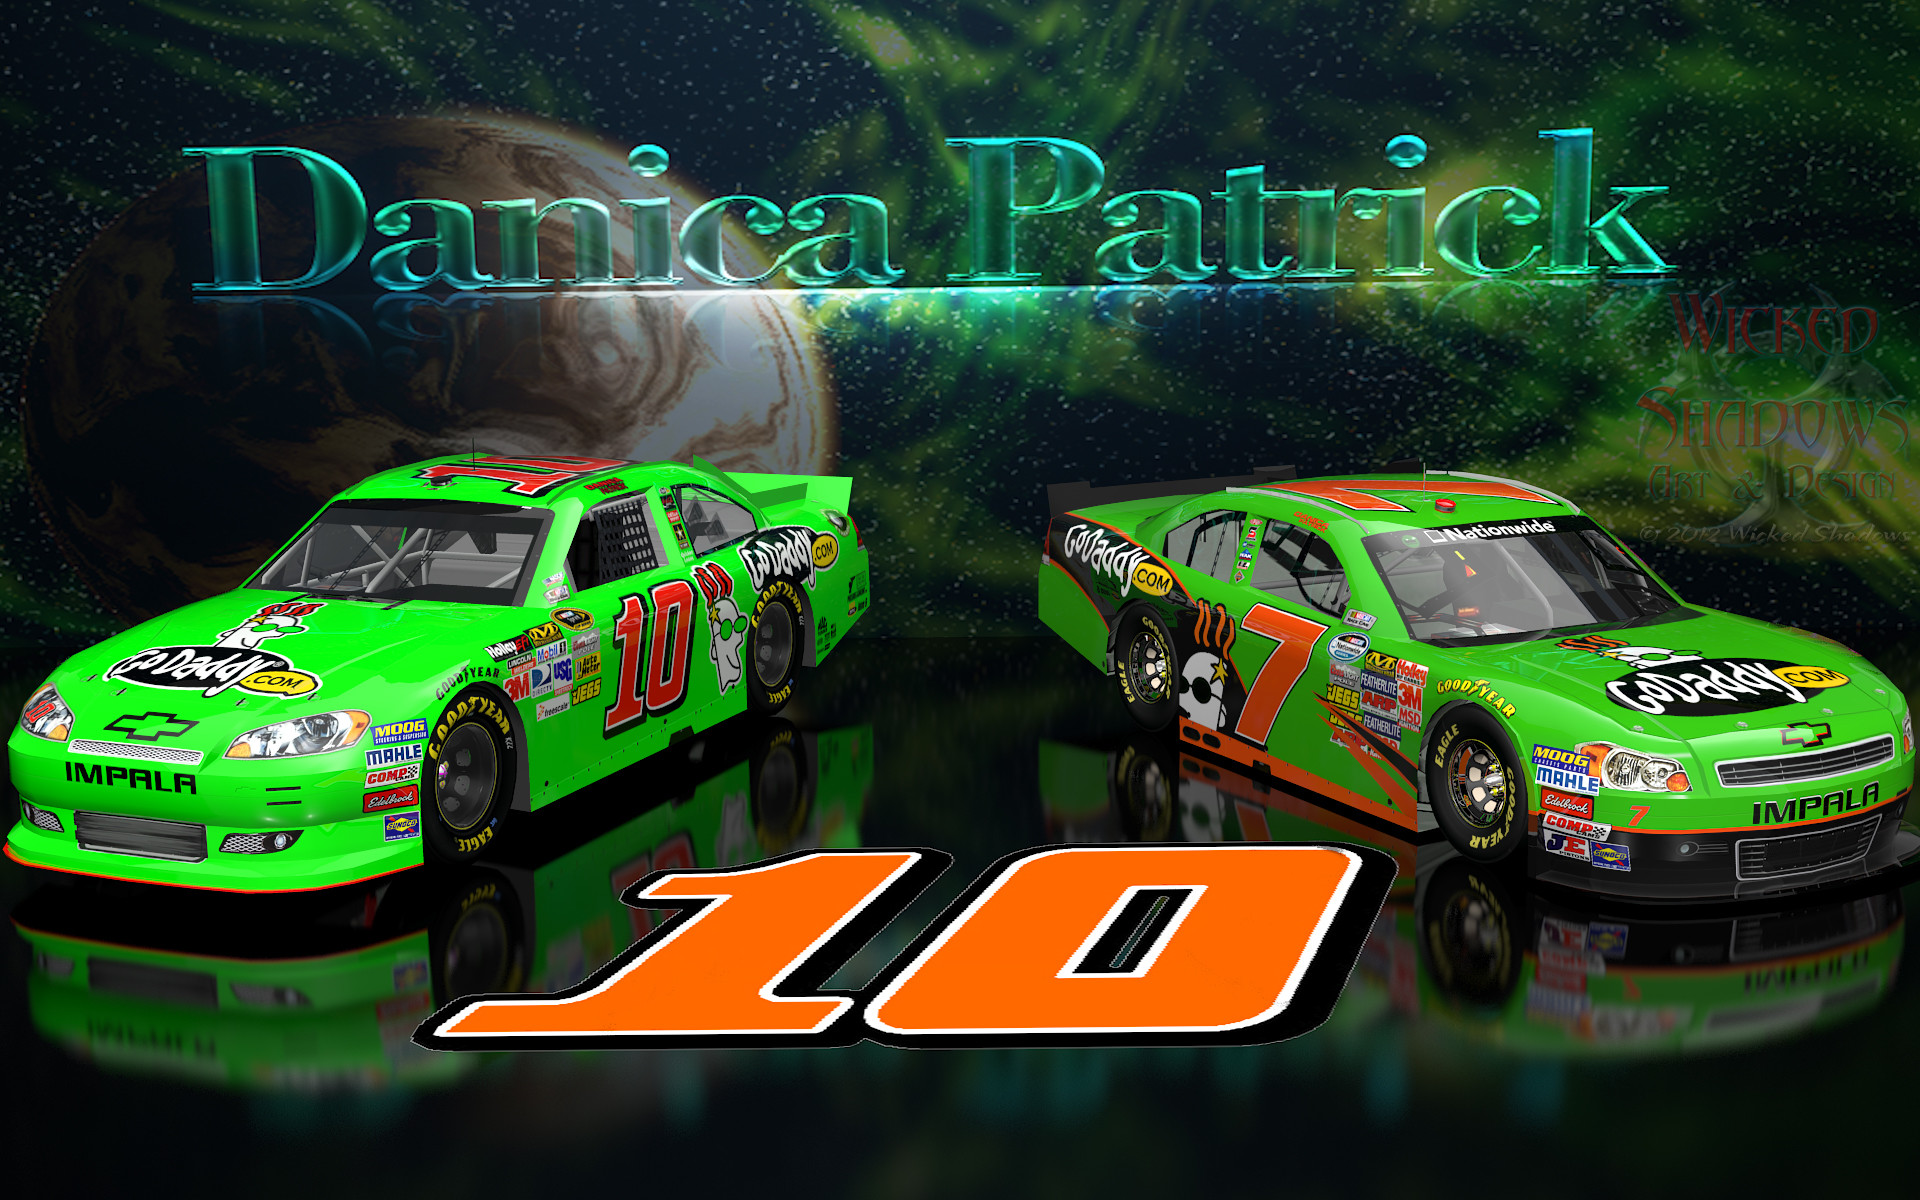 1920x1200 Wallpapers By Wicked Shadows: Danica Patrick NNS And Cup Go Daddy Cars .